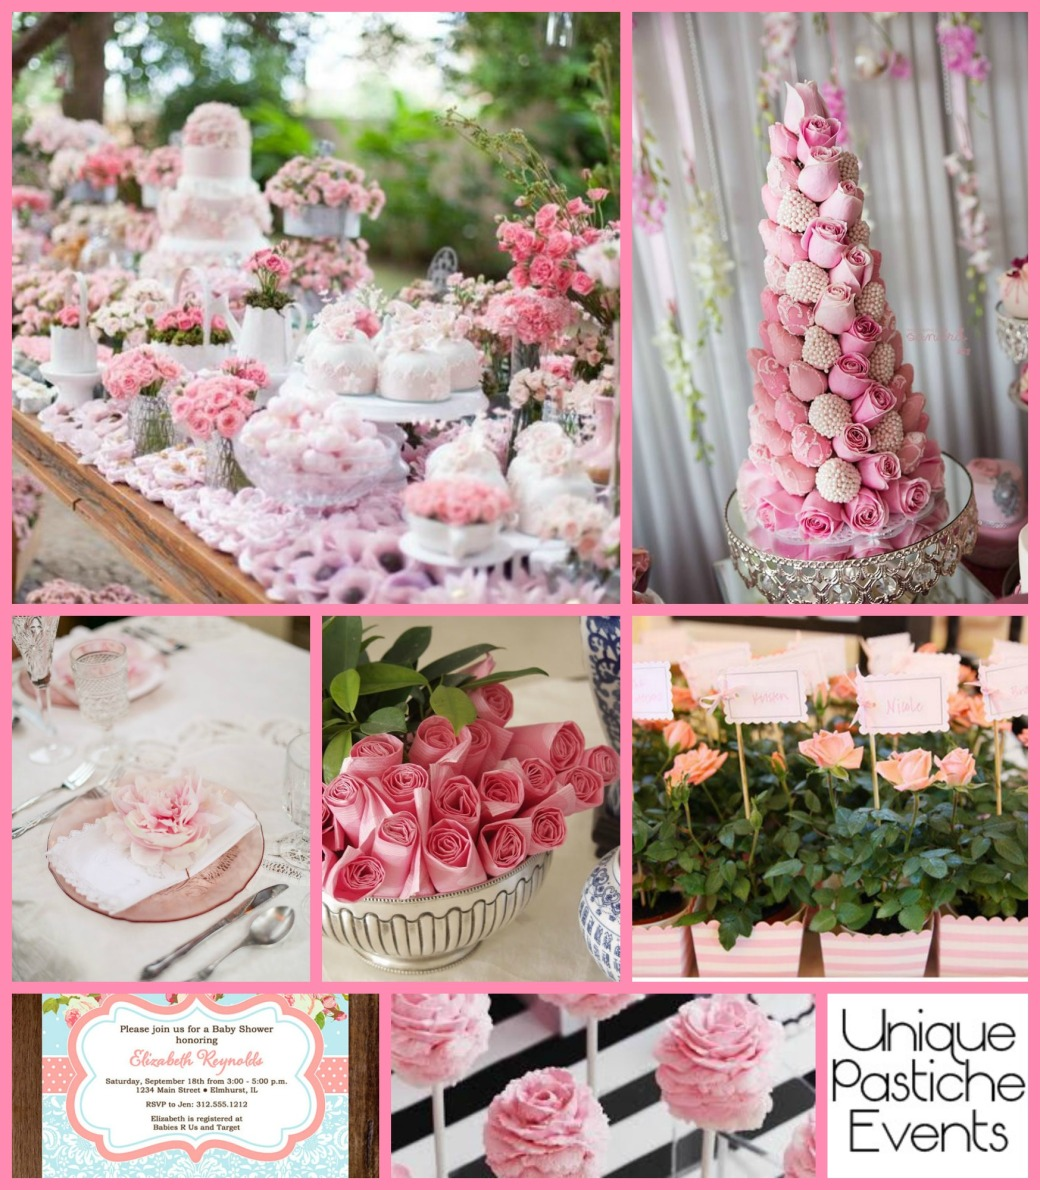 Pale Pink Rose Baby Shower Idea Board See the full post for all the details: https://uniquepasticheevents.com/2015/04/29/pale-pink-rose-baby-shower/